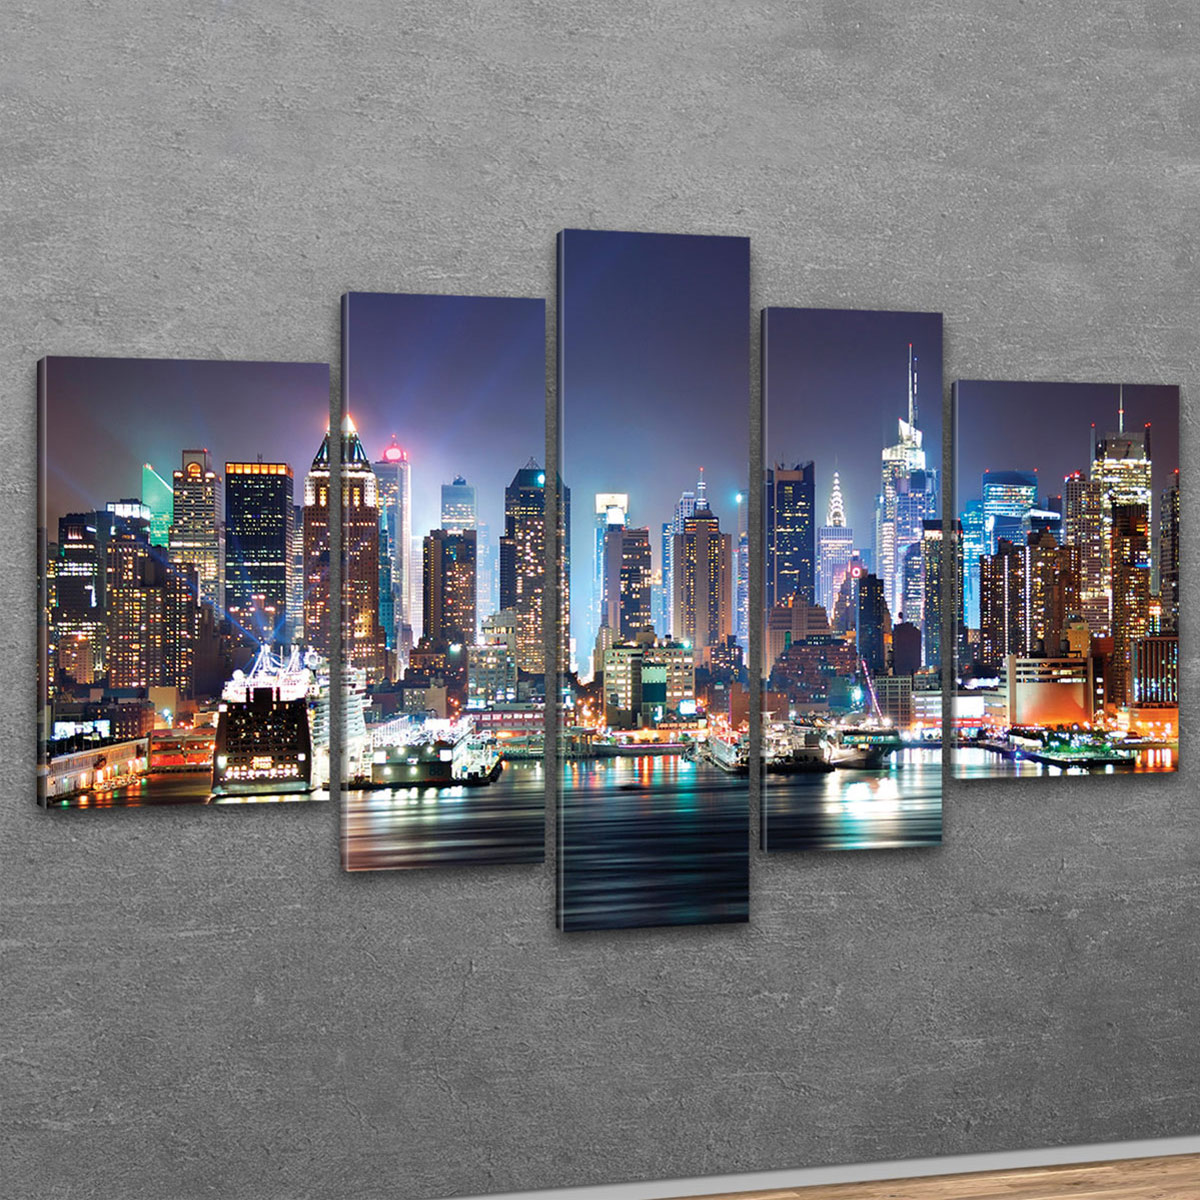 kunstdruck leinwand bilder new york skyline manhattan bei nacht bild xxl 5 teile ebay. Black Bedroom Furniture Sets. Home Design Ideas